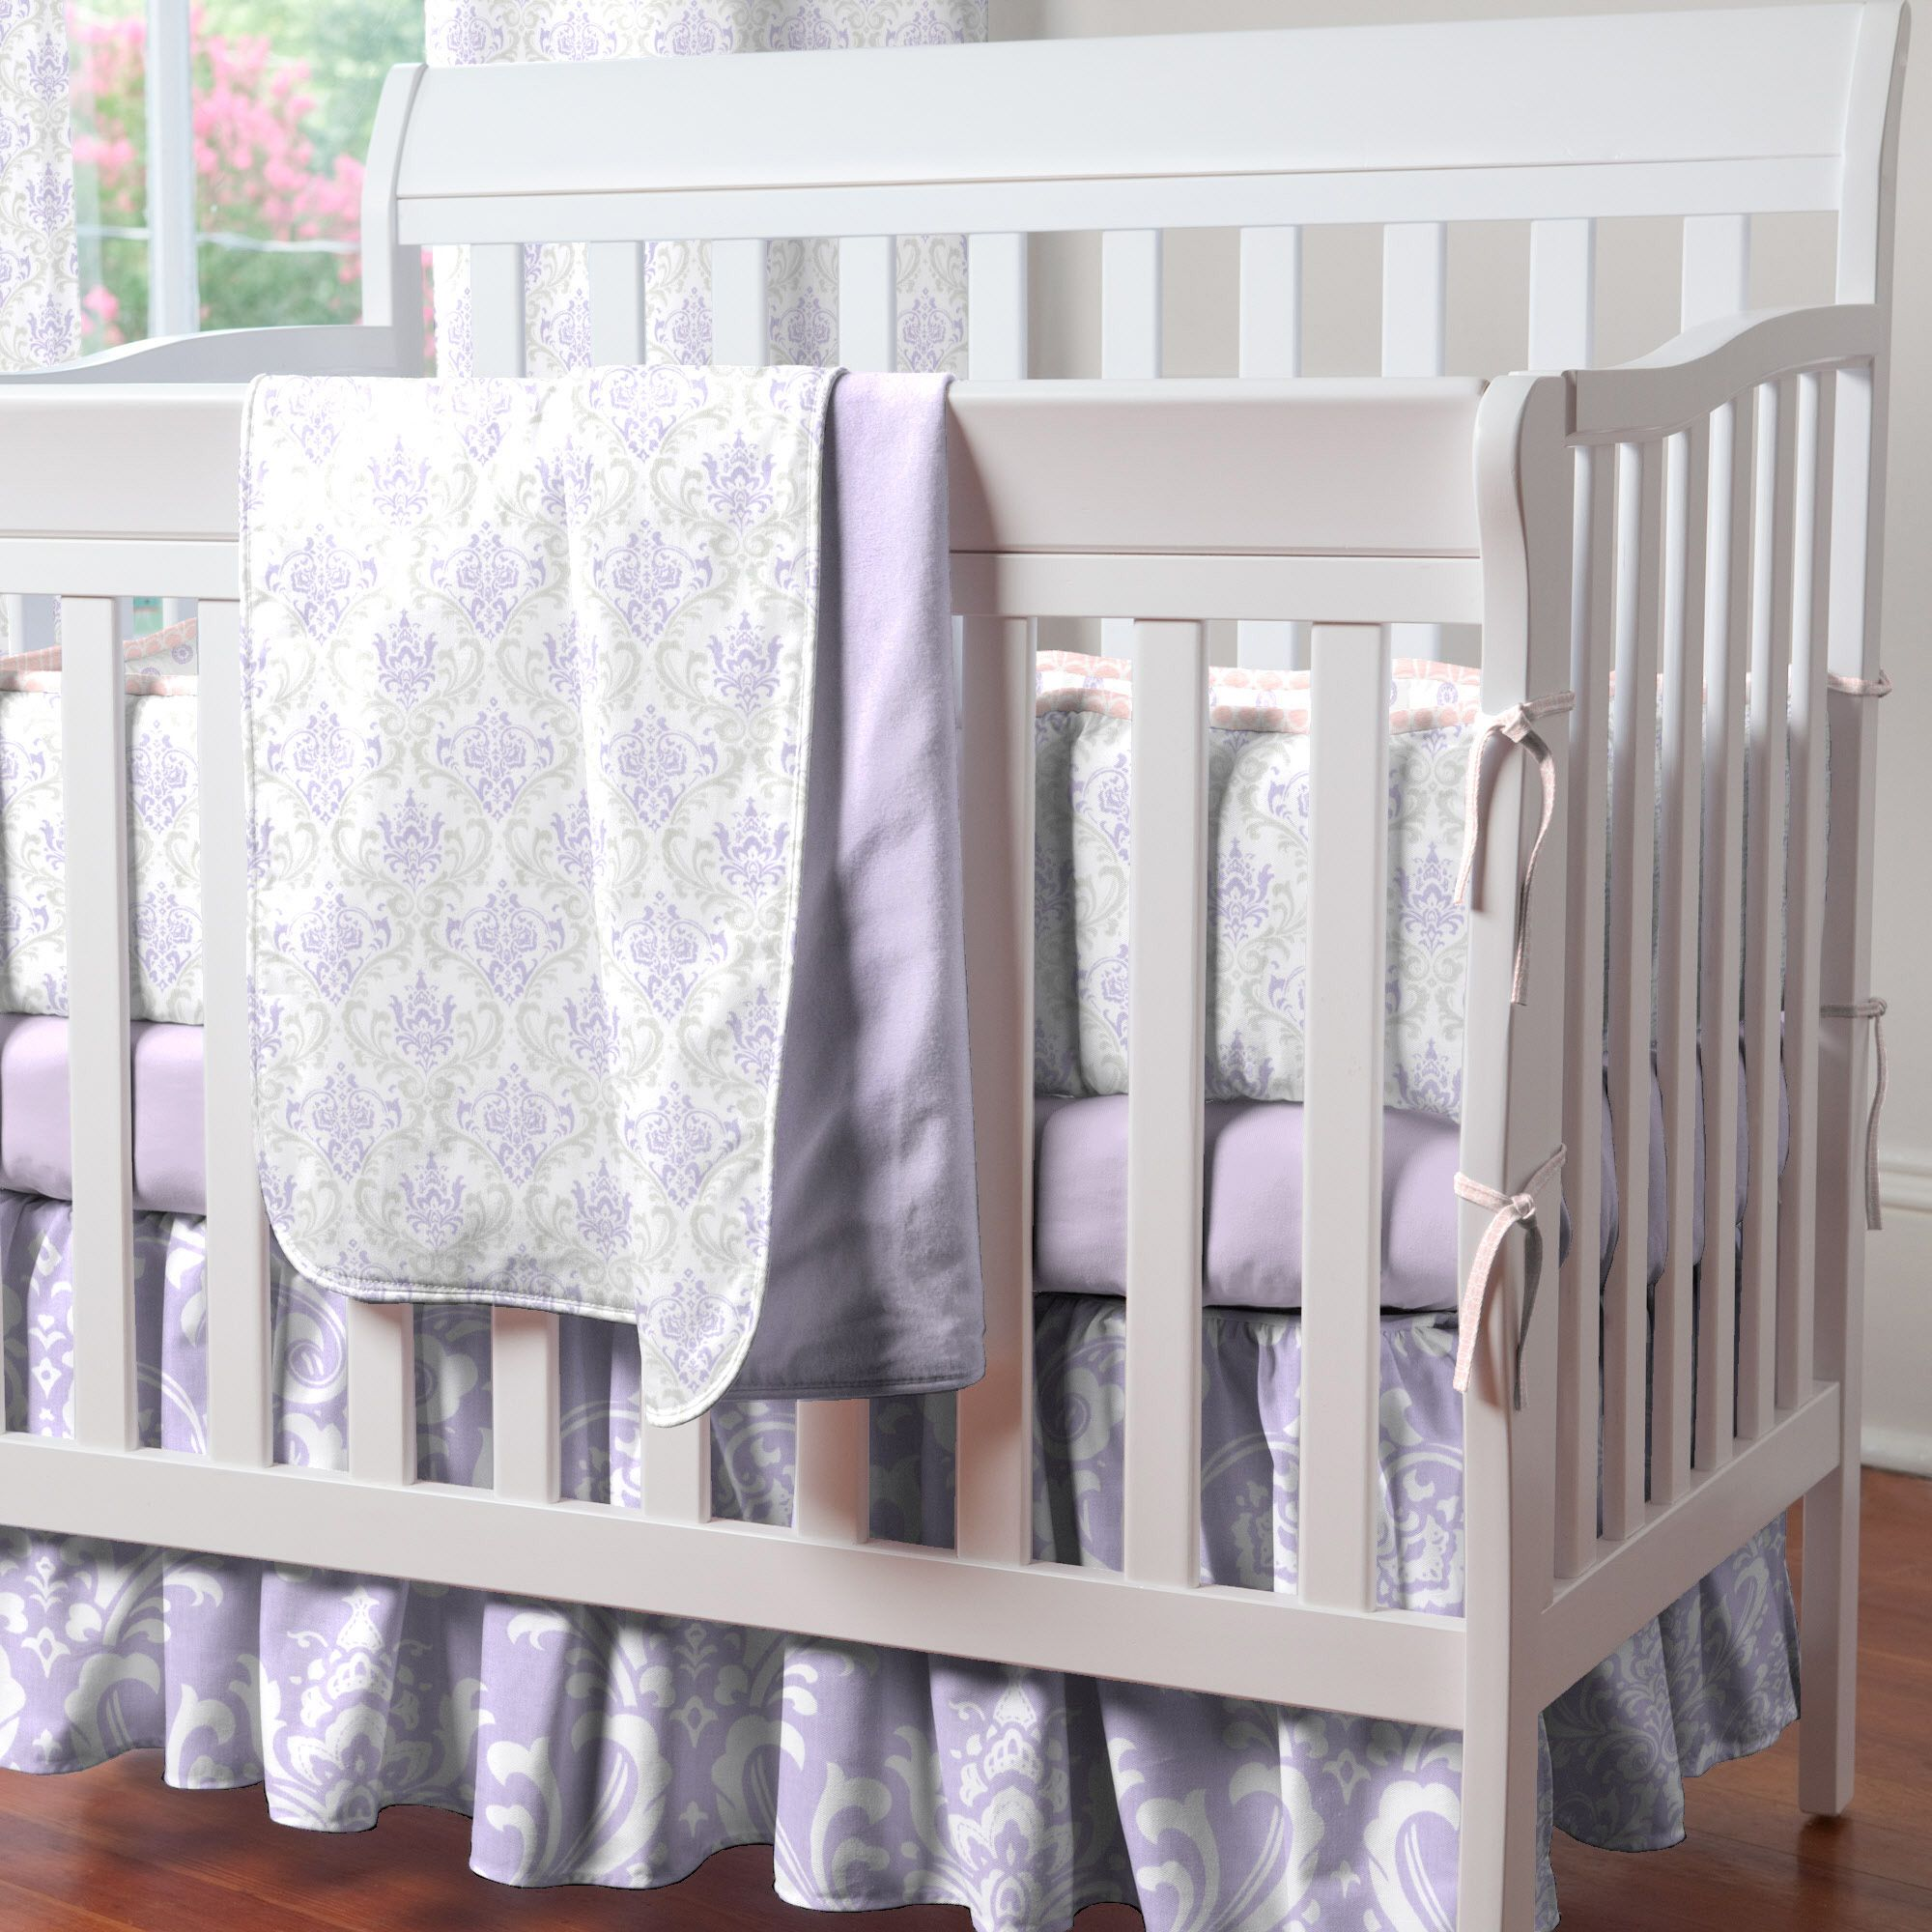 Baby bedding lamb theme sweet pea lamb baby bedding and nursery - Lilac And Silver Gray Damask Mini Crib Bedding